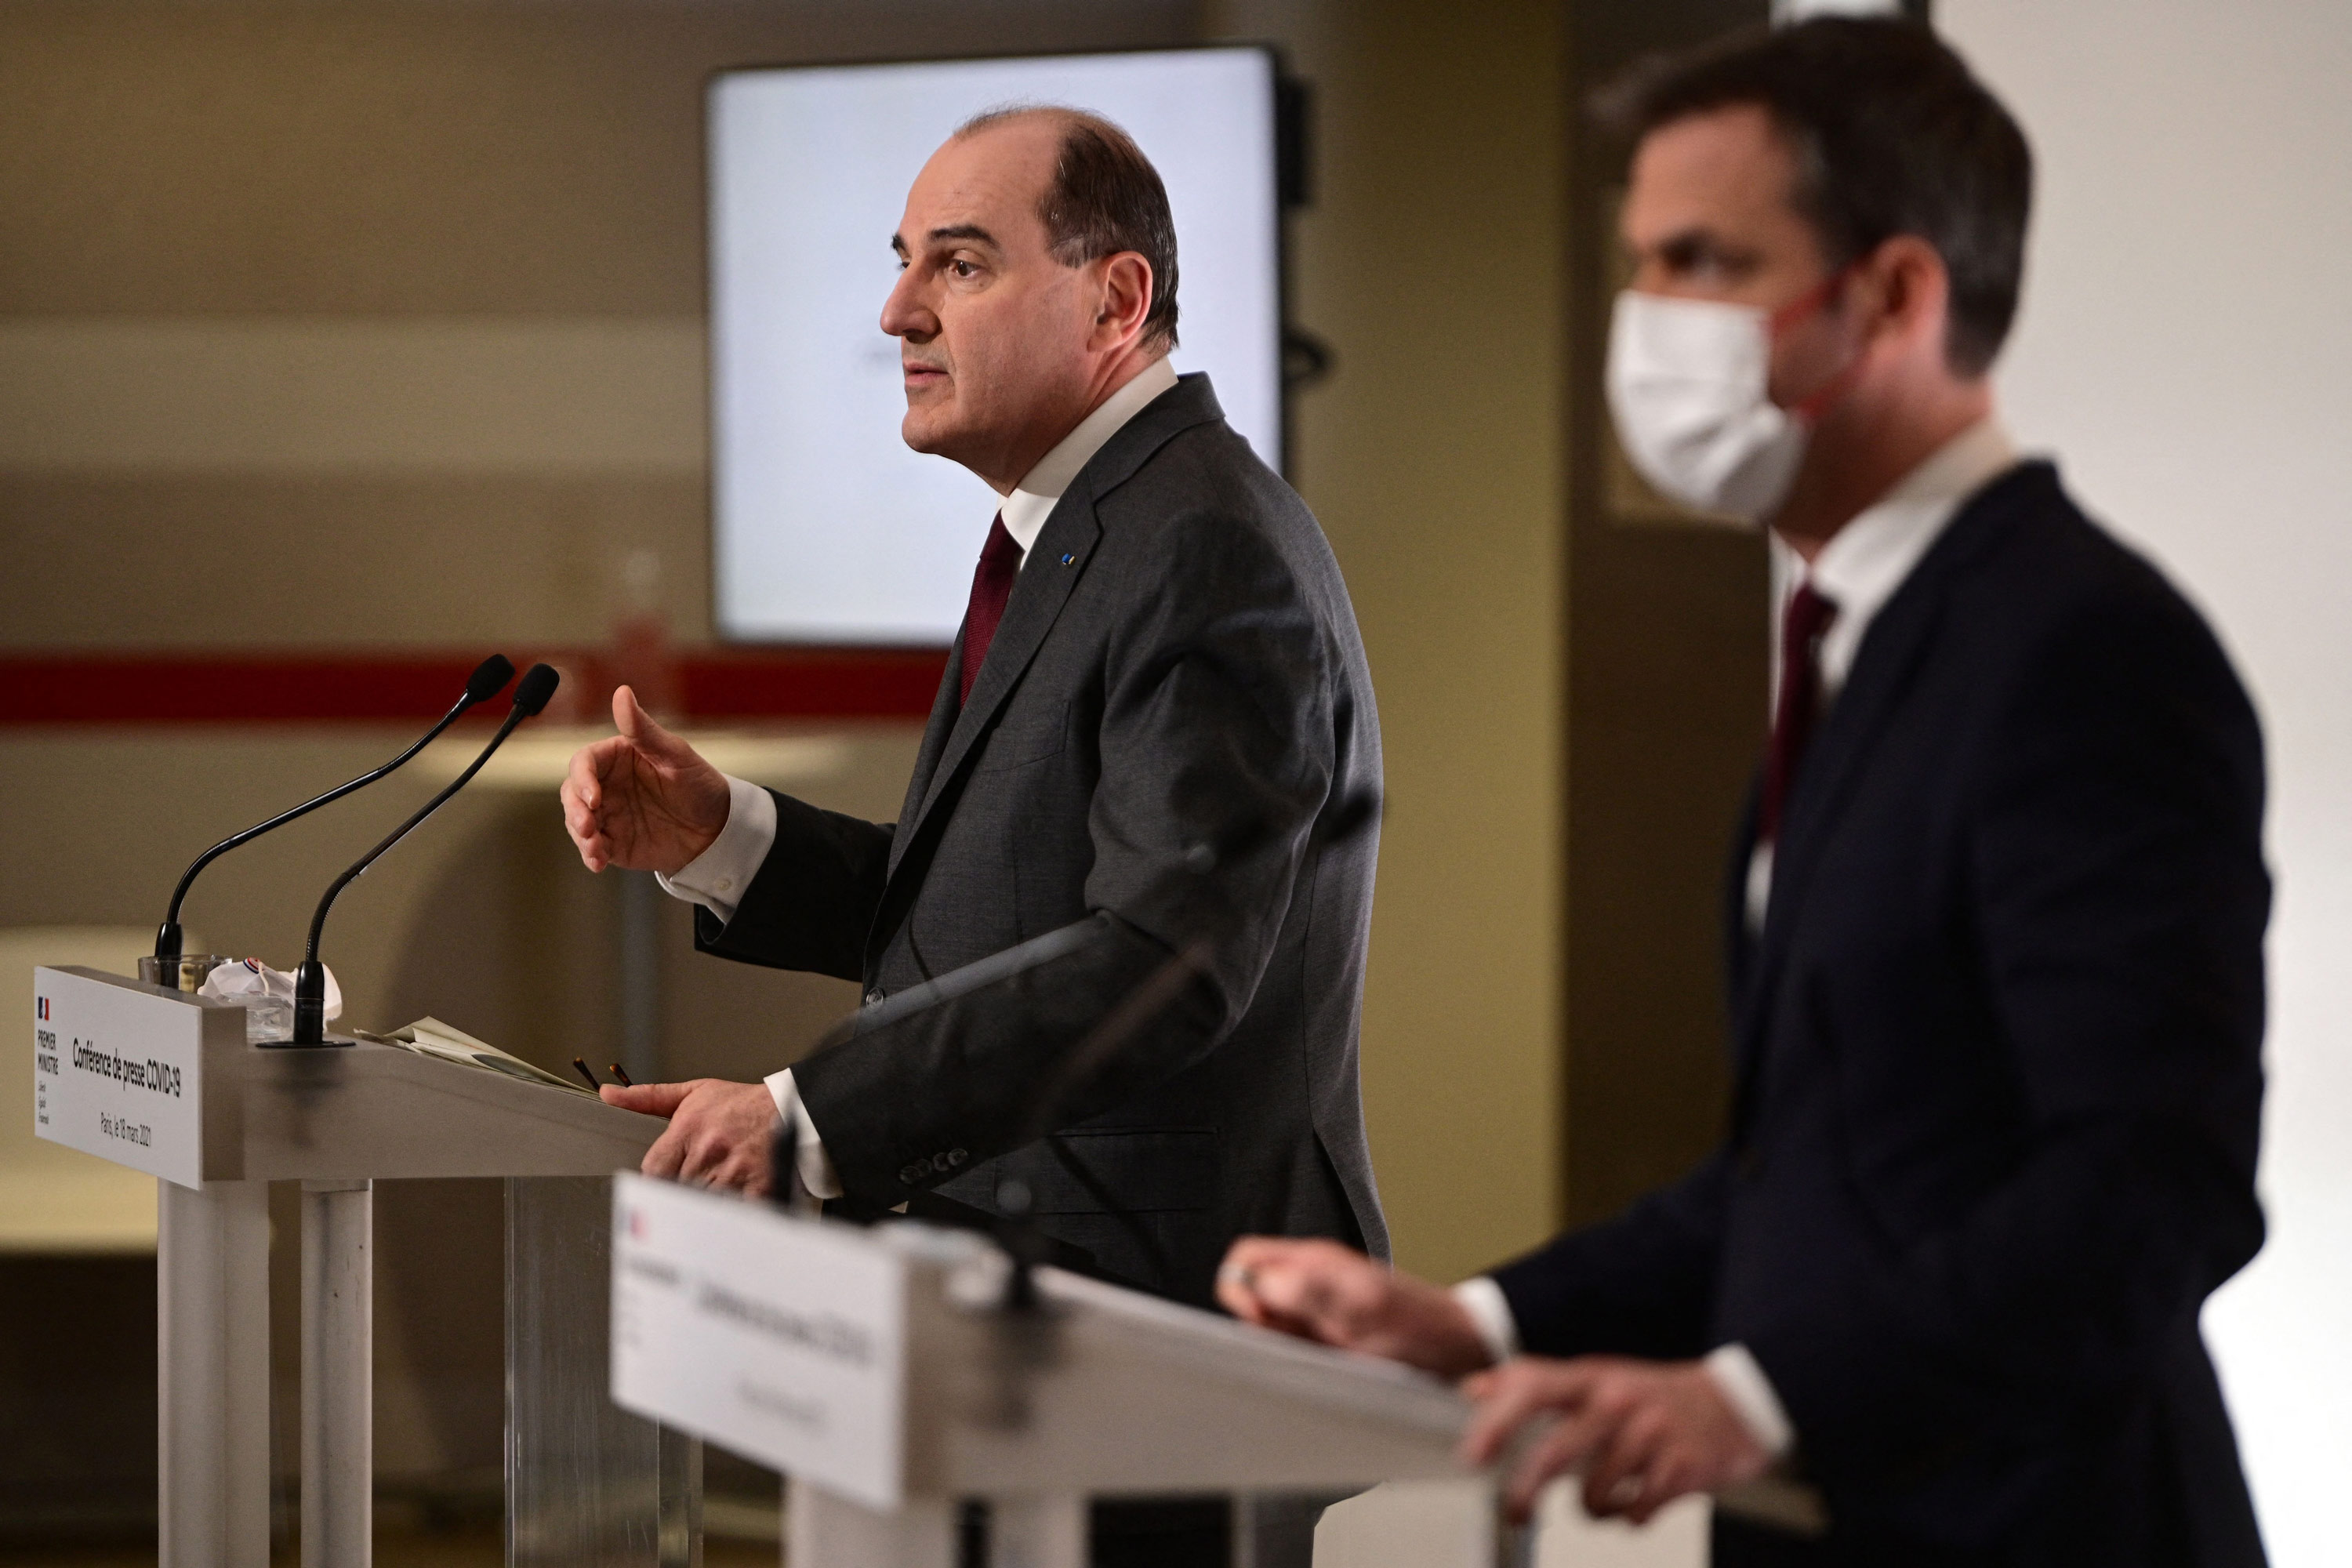 French Prime Minister Jean Castex, left, and French Health Minister Olivier Veran deliver a joint press conference in Paris on March 18.